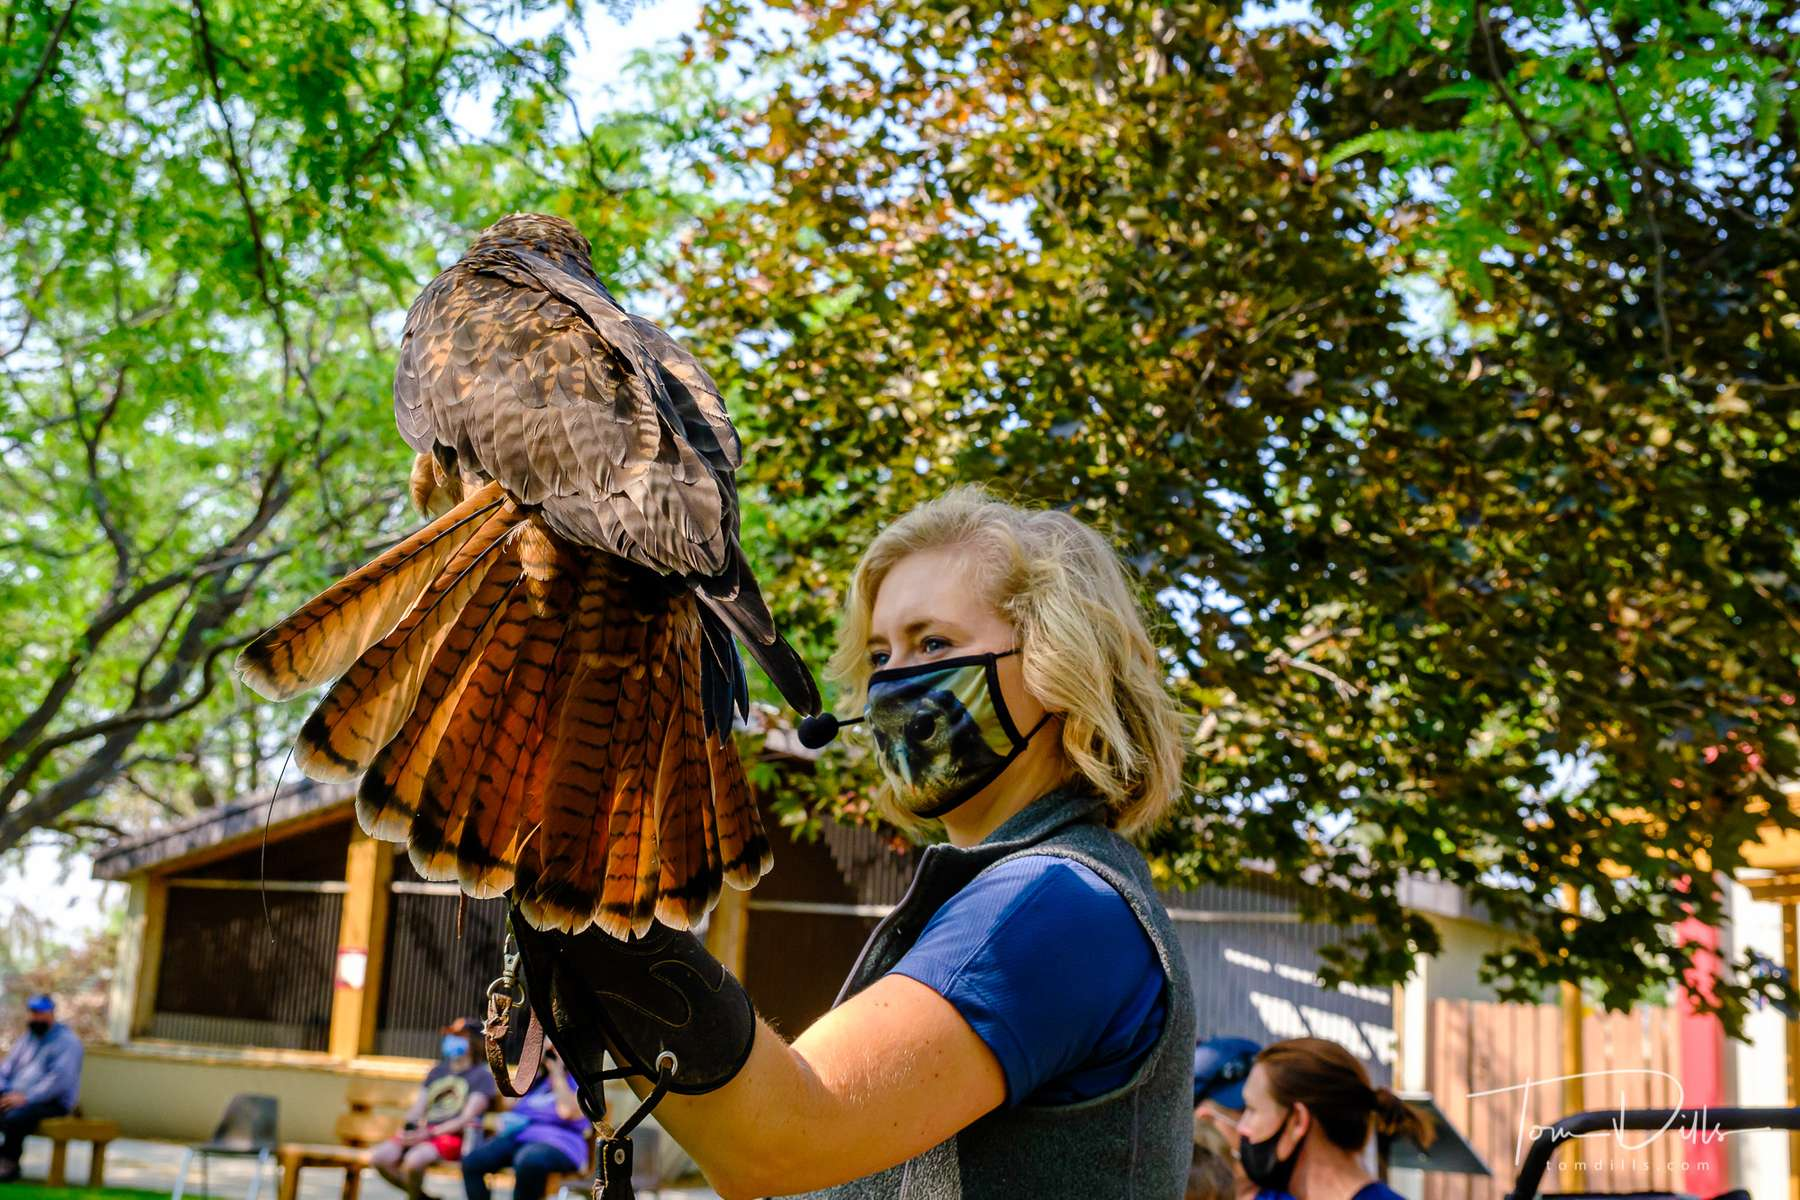 Flight demonstration with Phoenix the Red-tailed Hawk  at the World Center for Birds of Prey in Boise, Idaho